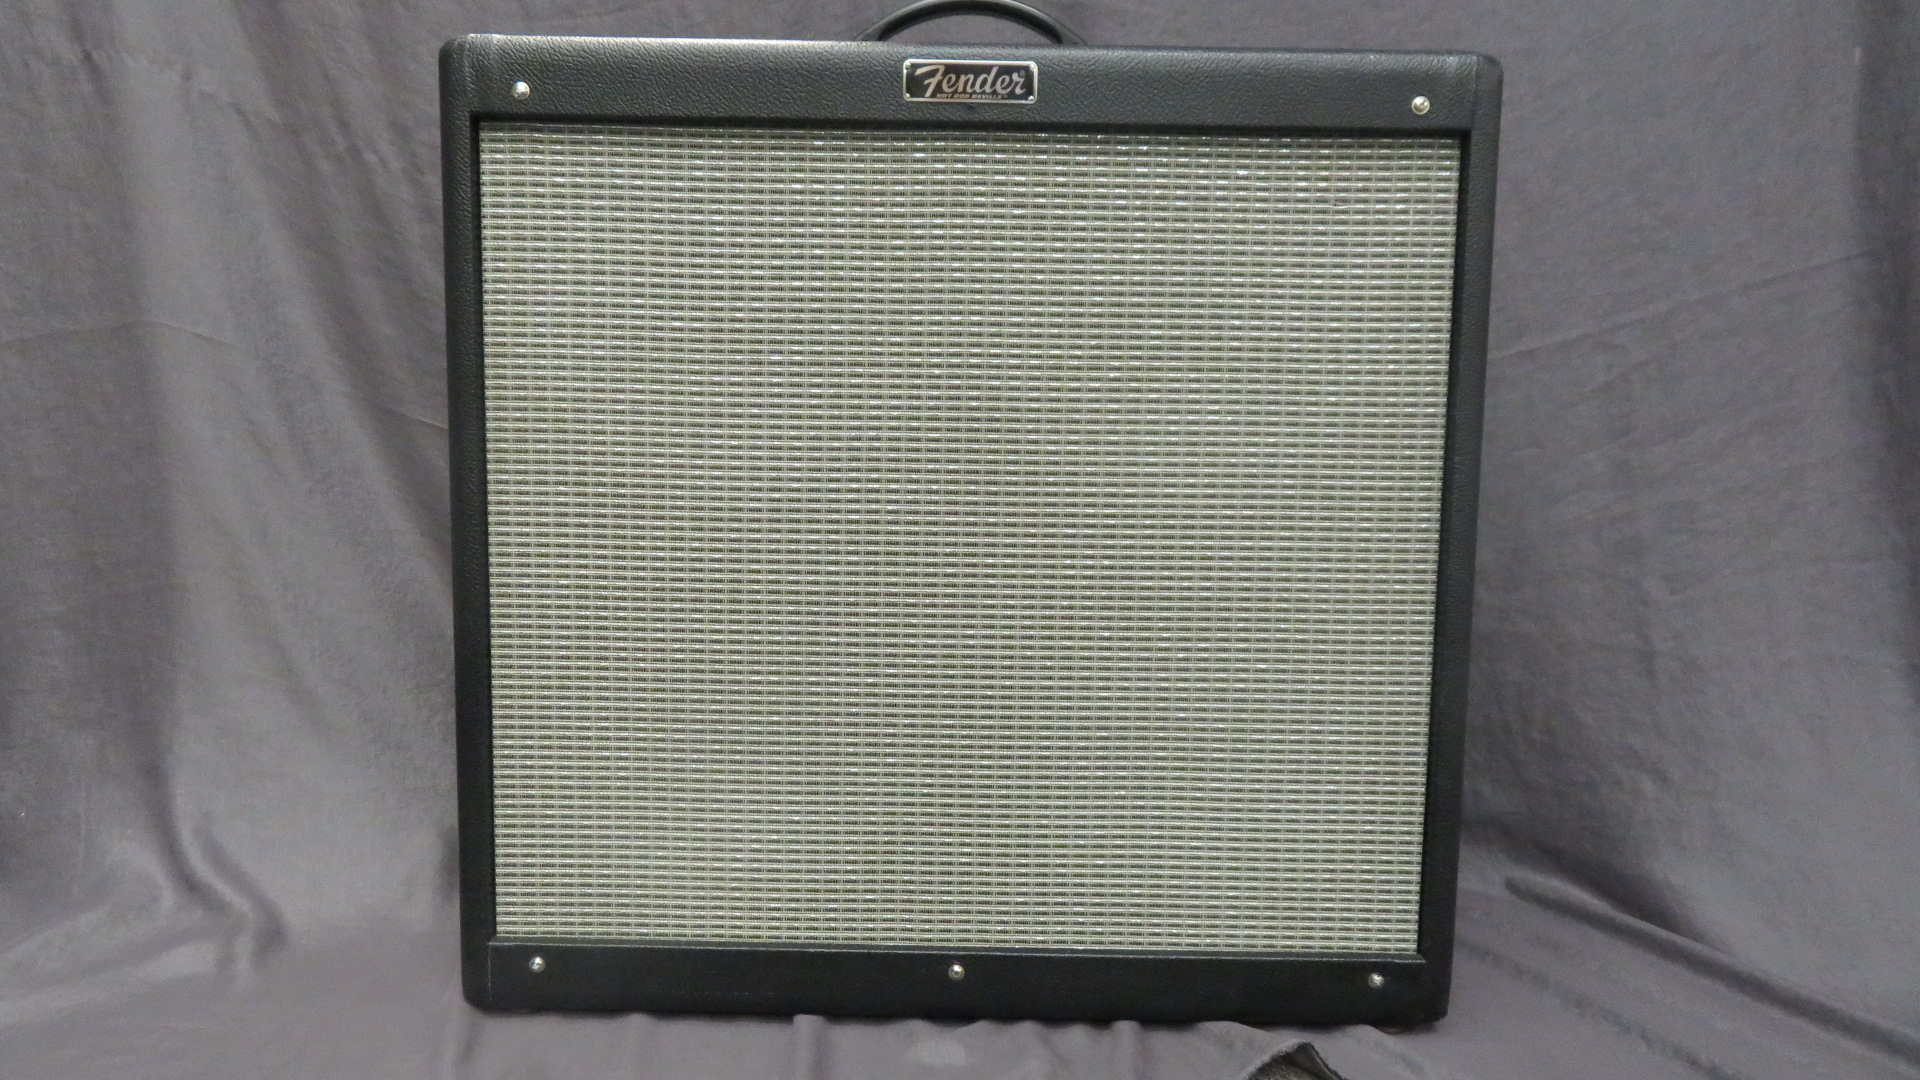 Fender 4x10 Guitar Cabinet Used Combo Guitar Amps Used Gear At Sam Ash Music